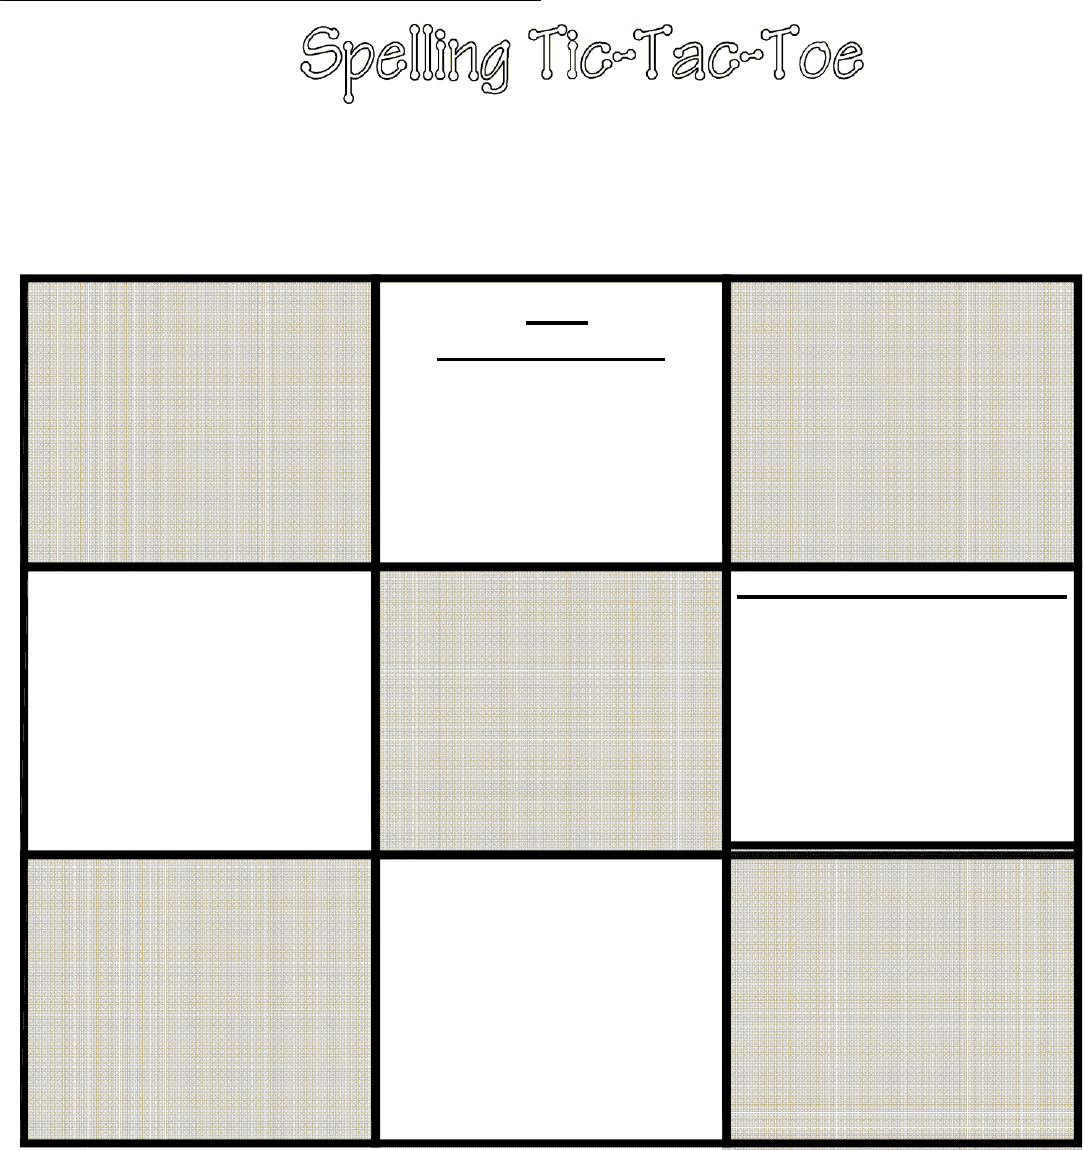 Tic Tac Toe Template in Word and Pdf formats Intended For Tic Tac Toe Template Word